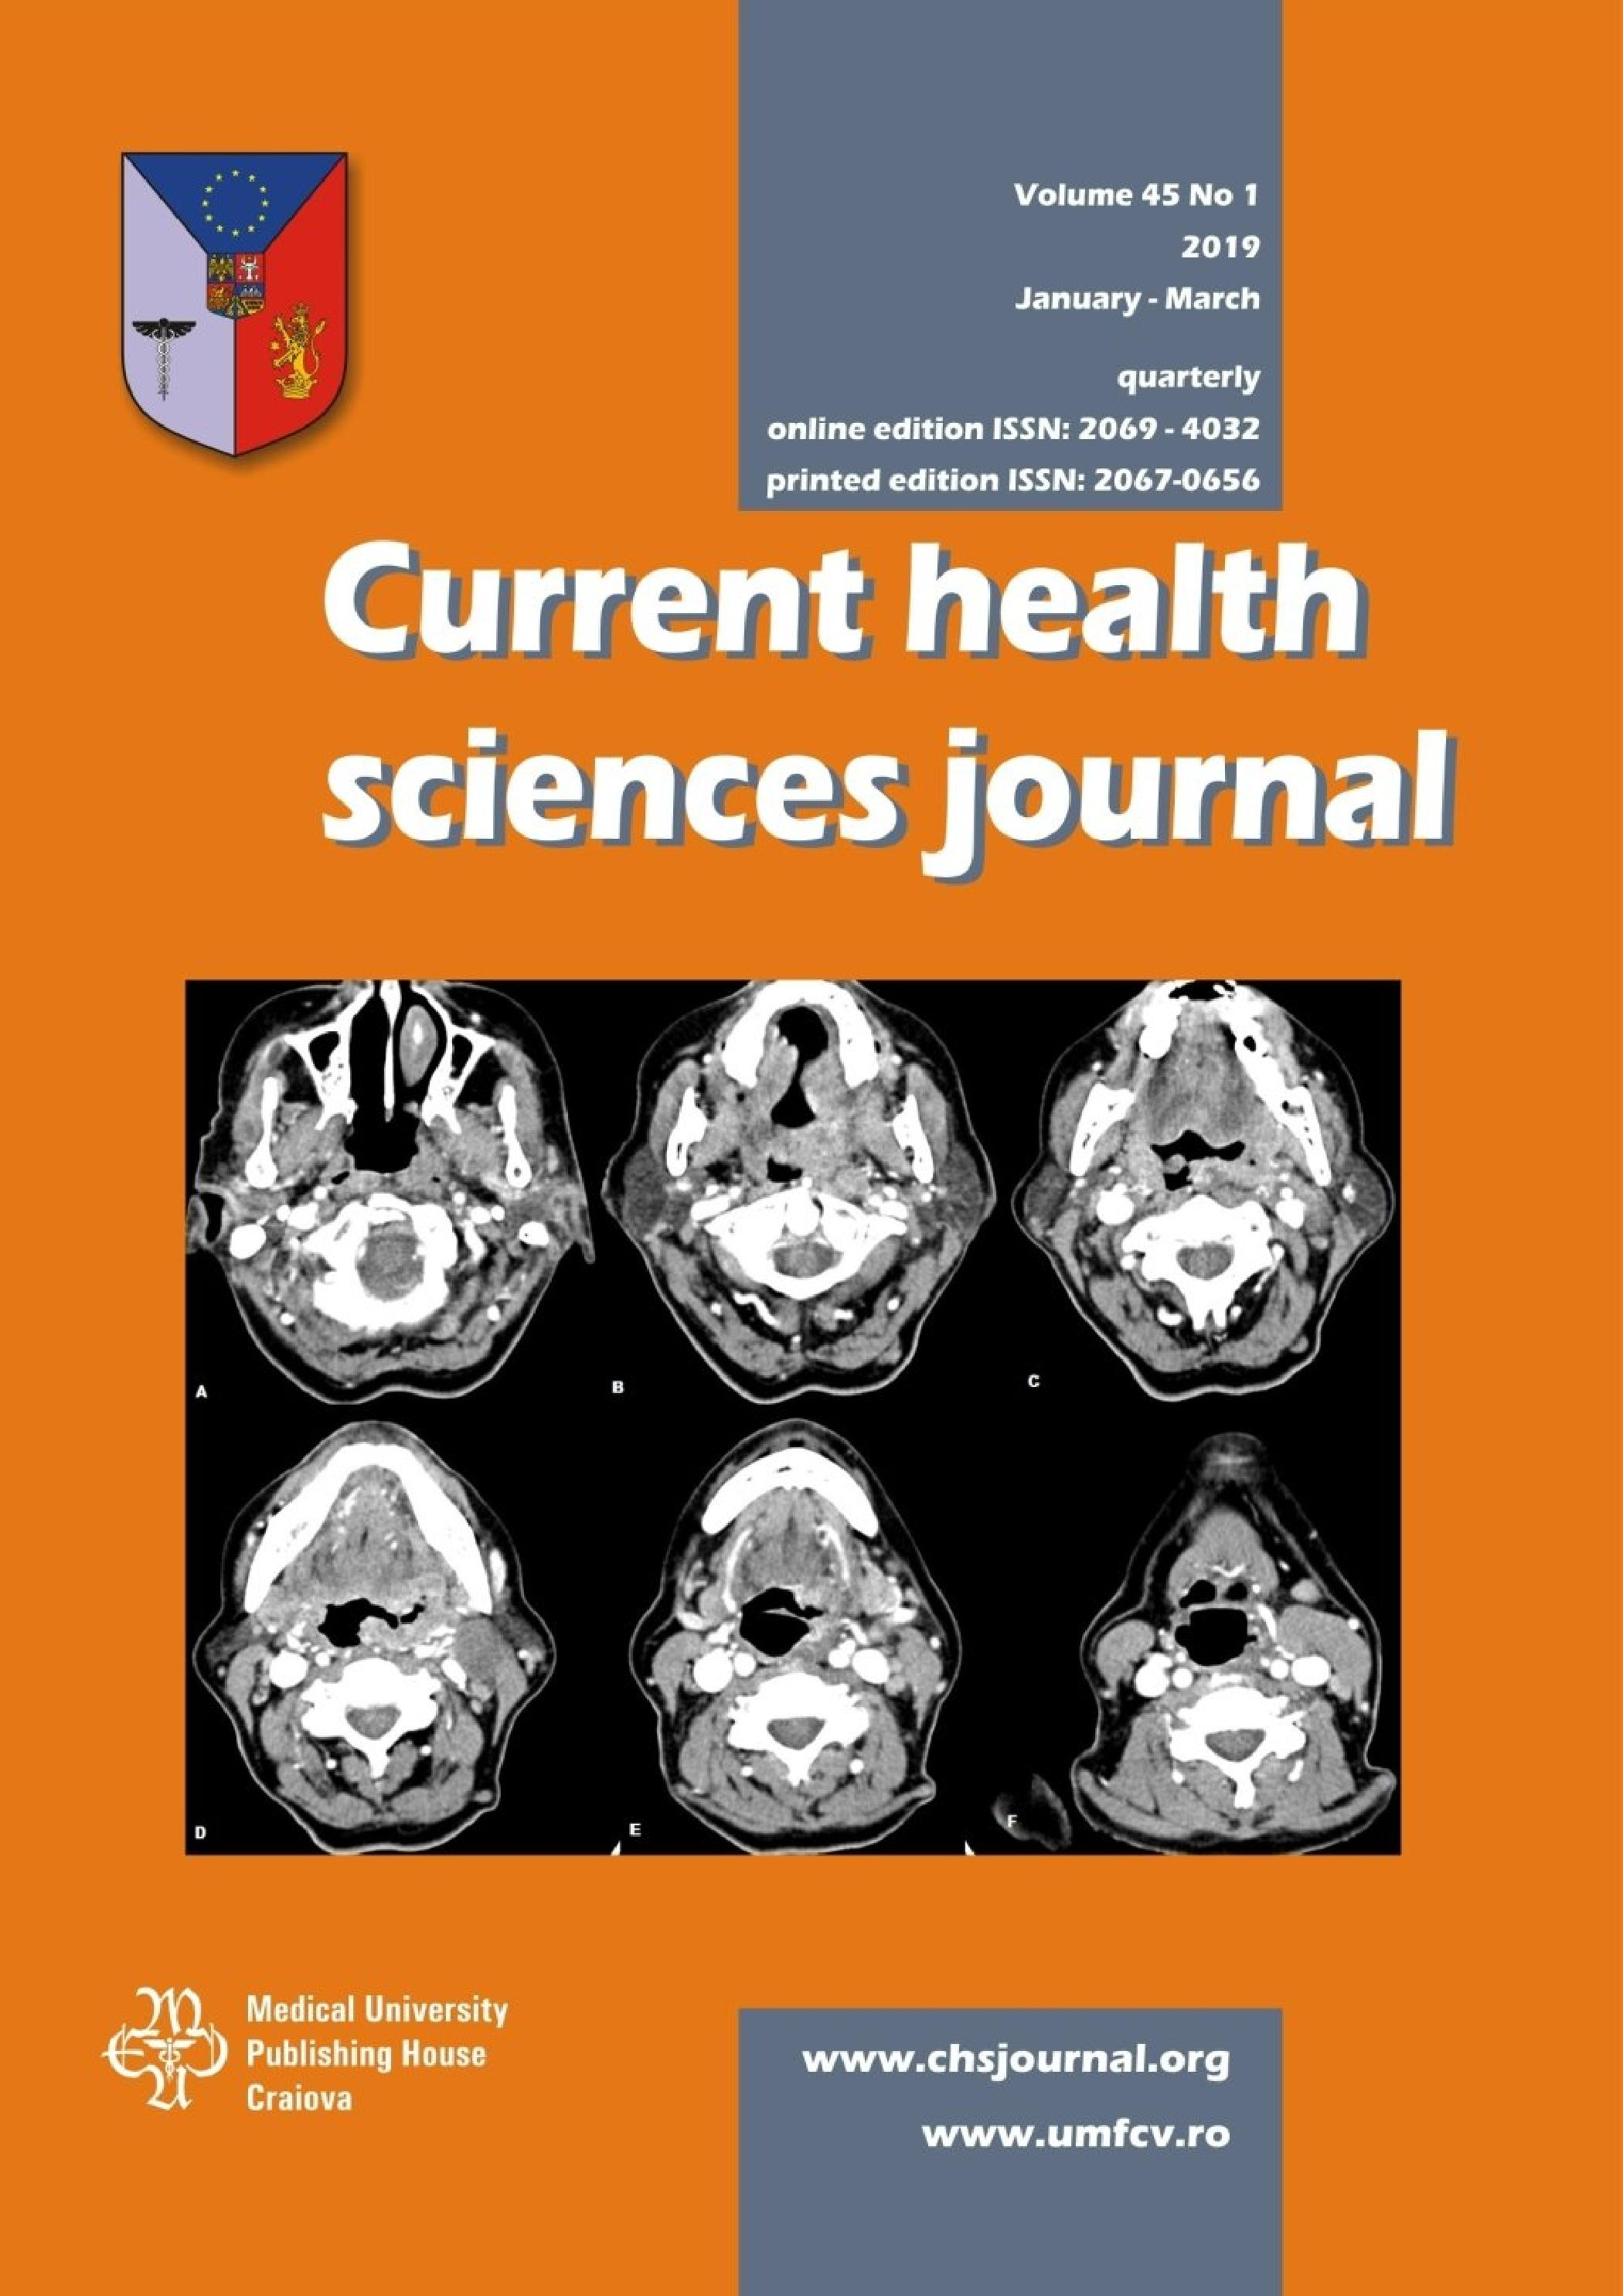 Current Health Sciences Journal, vol. 45 no. 1, 2019